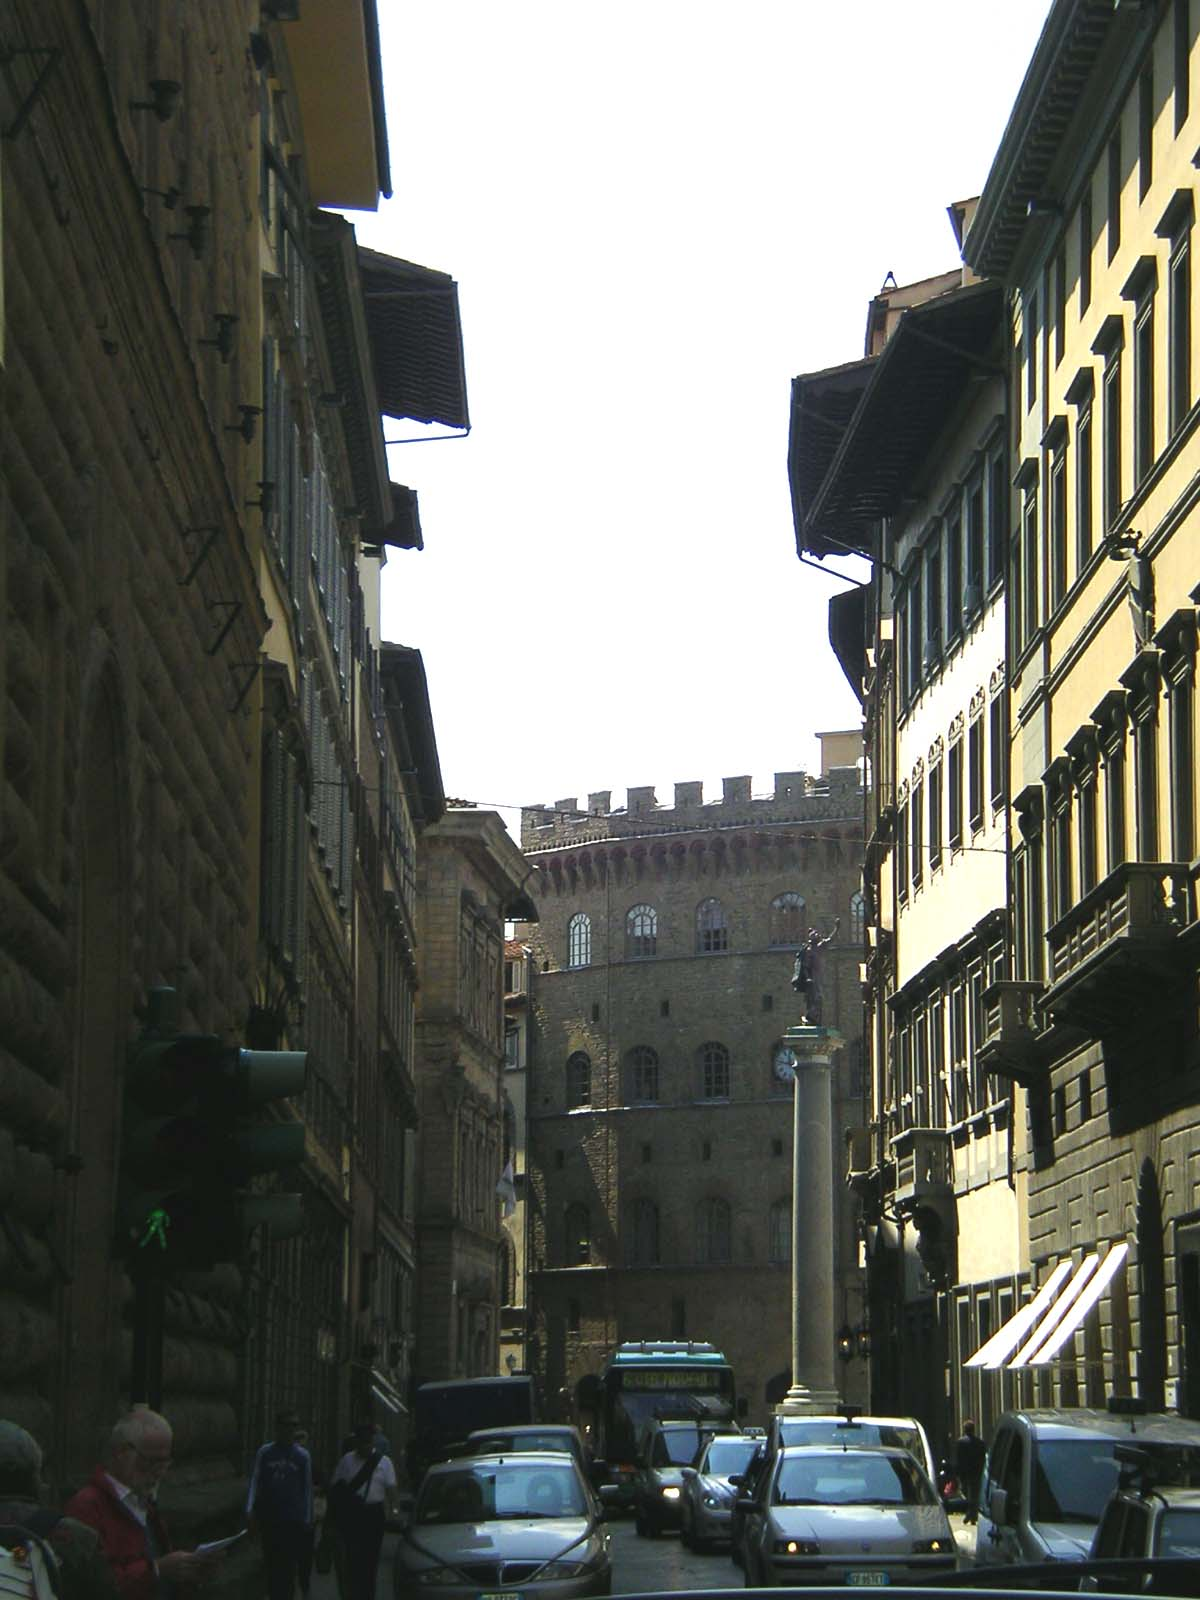 Via de Tornabuoni  Wikipedia